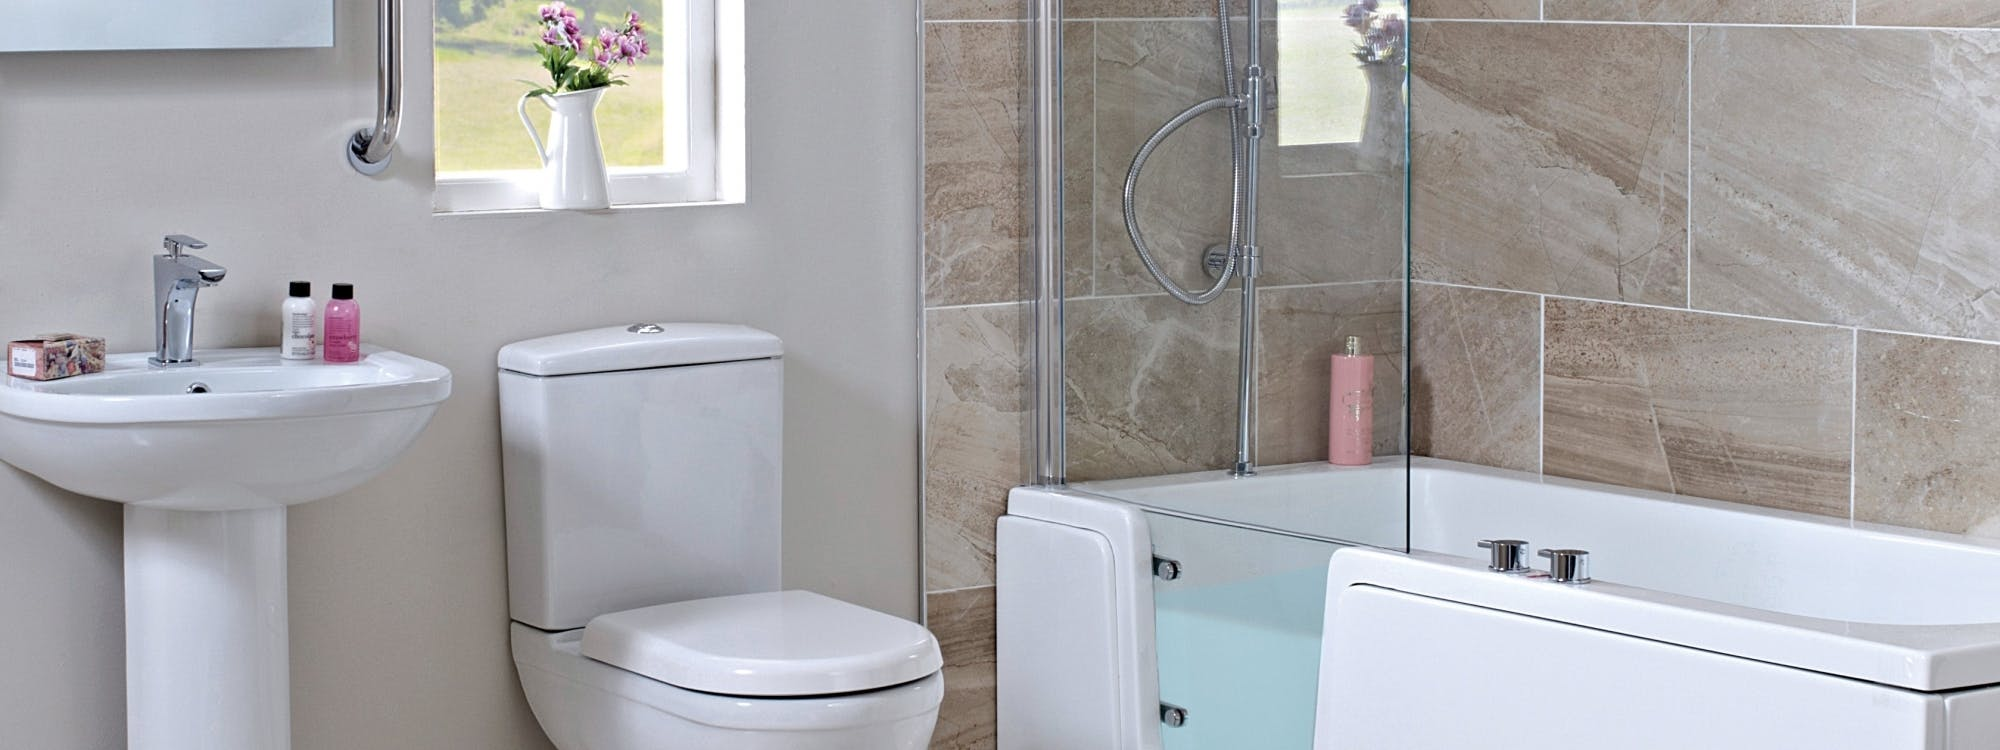 We've been designing & installing walk-in baths for over 50 years, and within that time helped hundreds of elderly & less-abled people remain safe & independent within their own home.